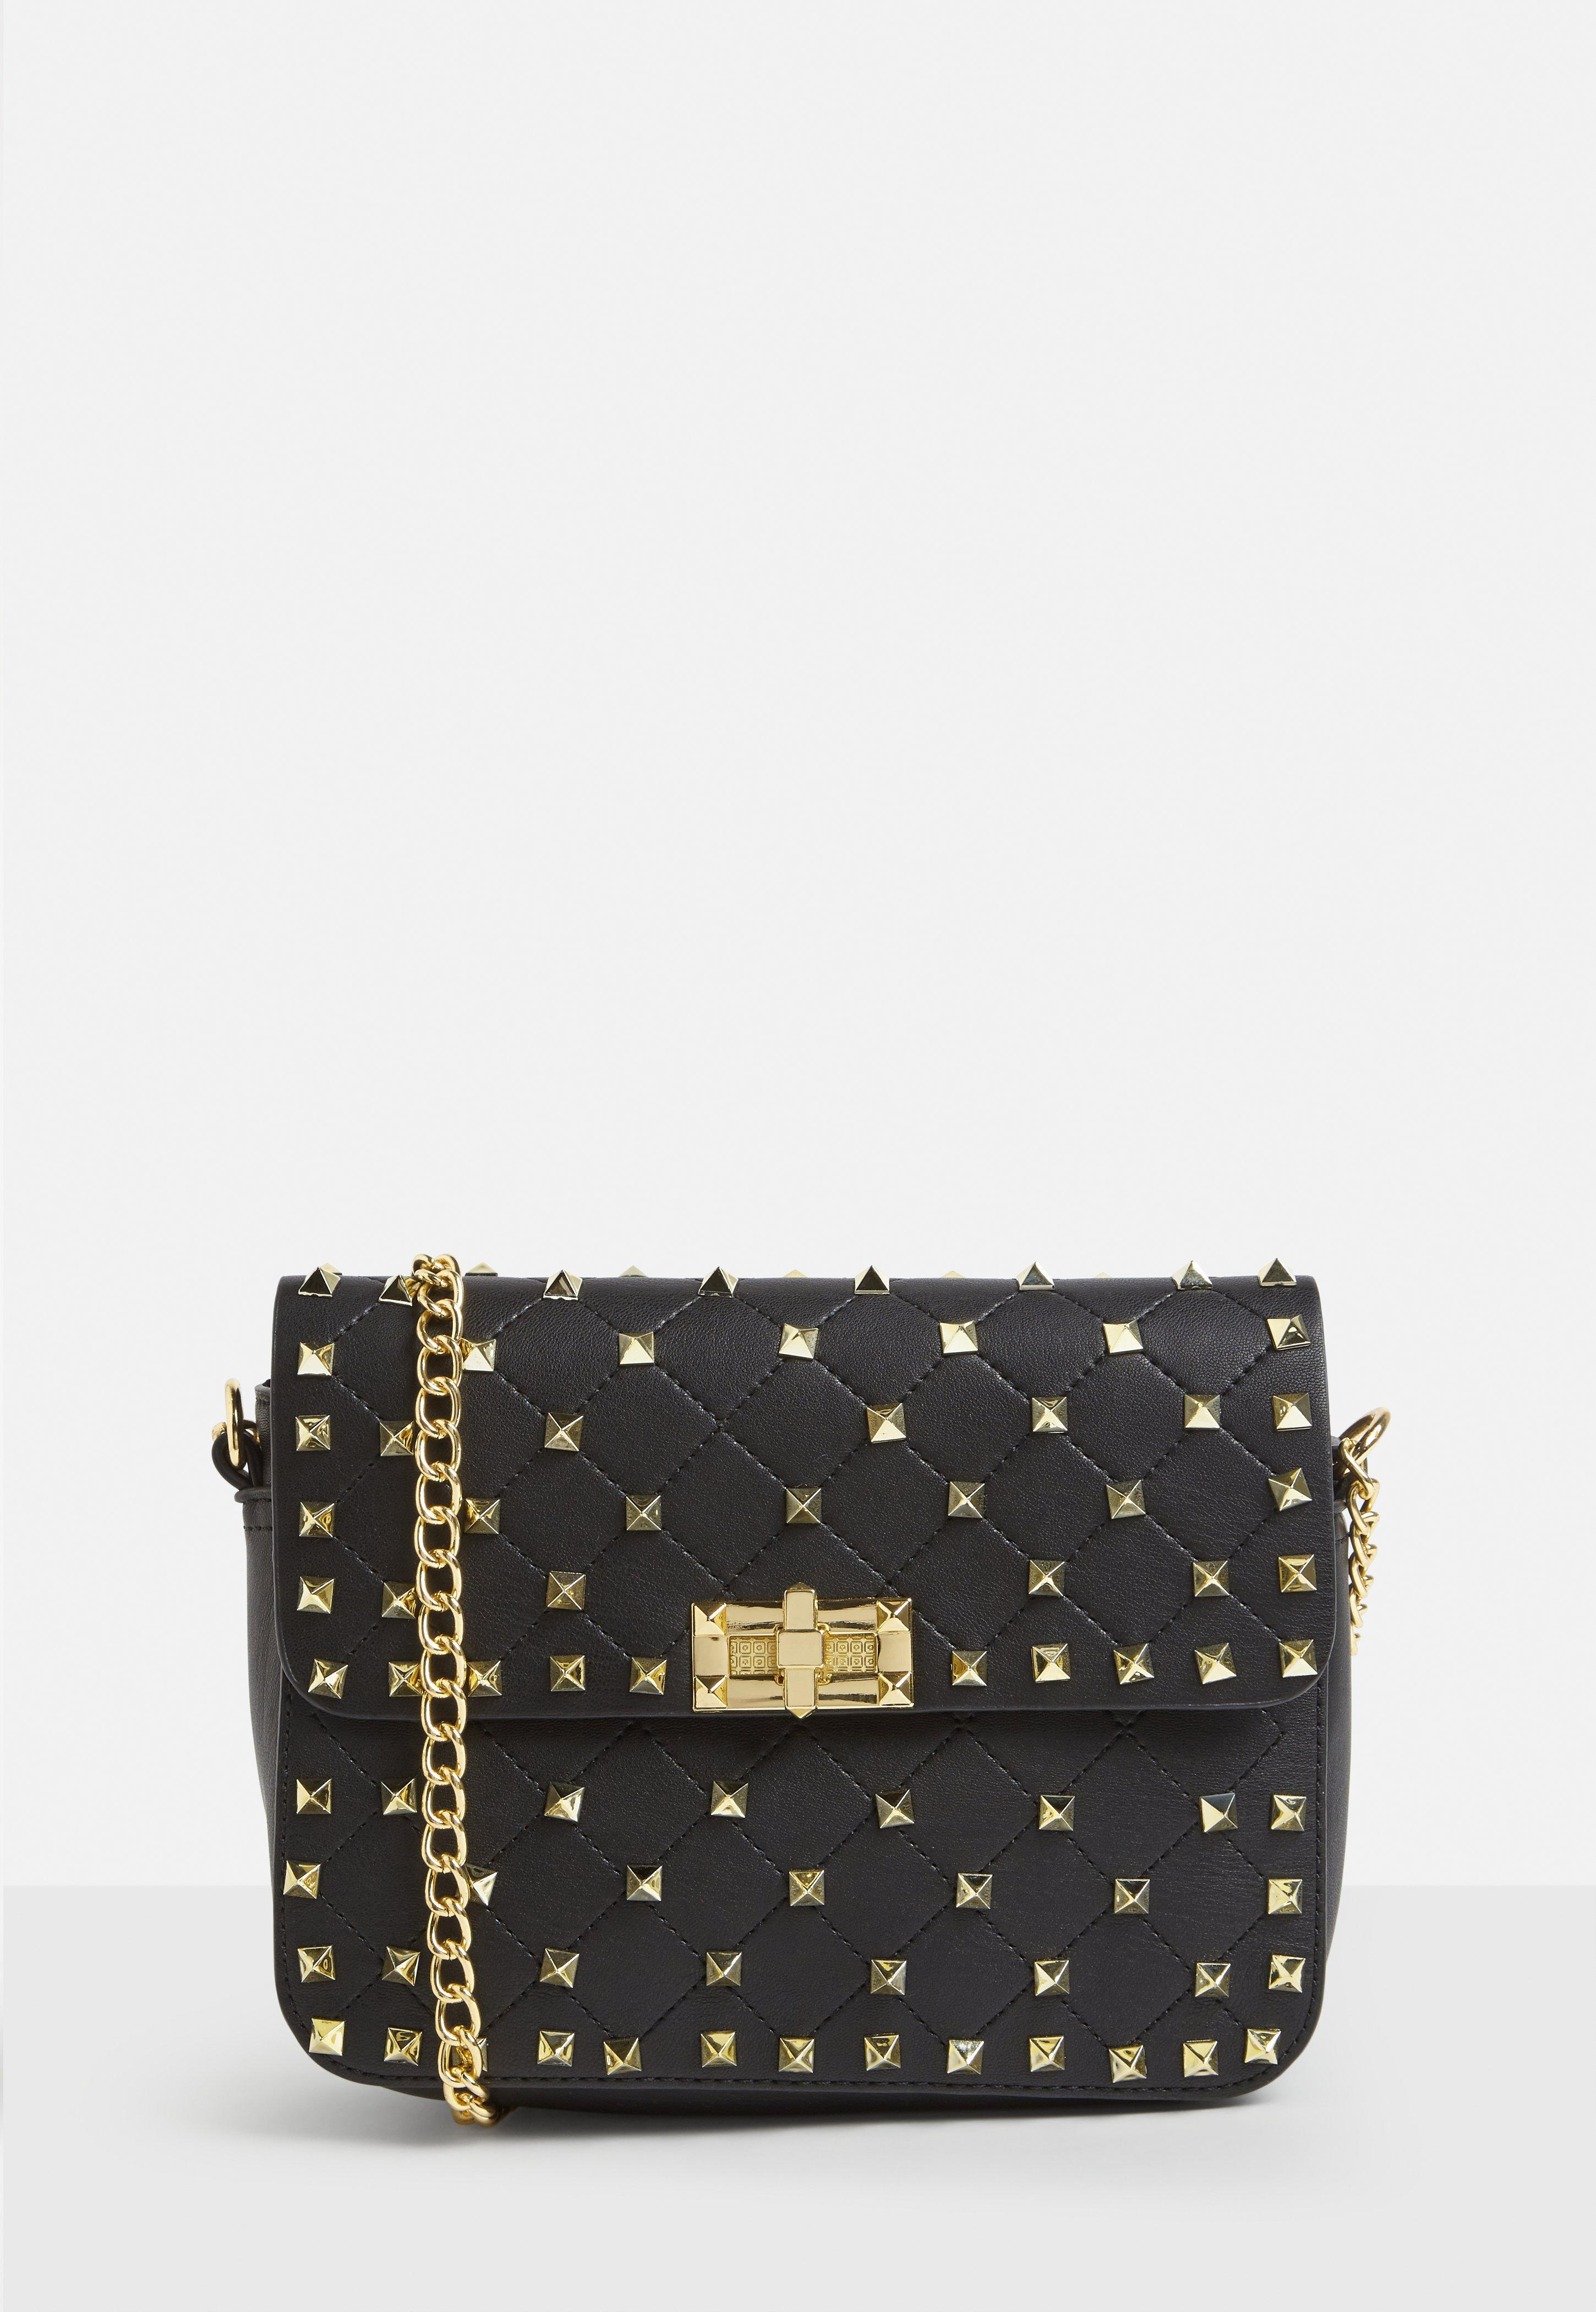 7834fc7ecd Missguided Black Faux Leather Gold Stud Cross Body Bag in Black - Lyst